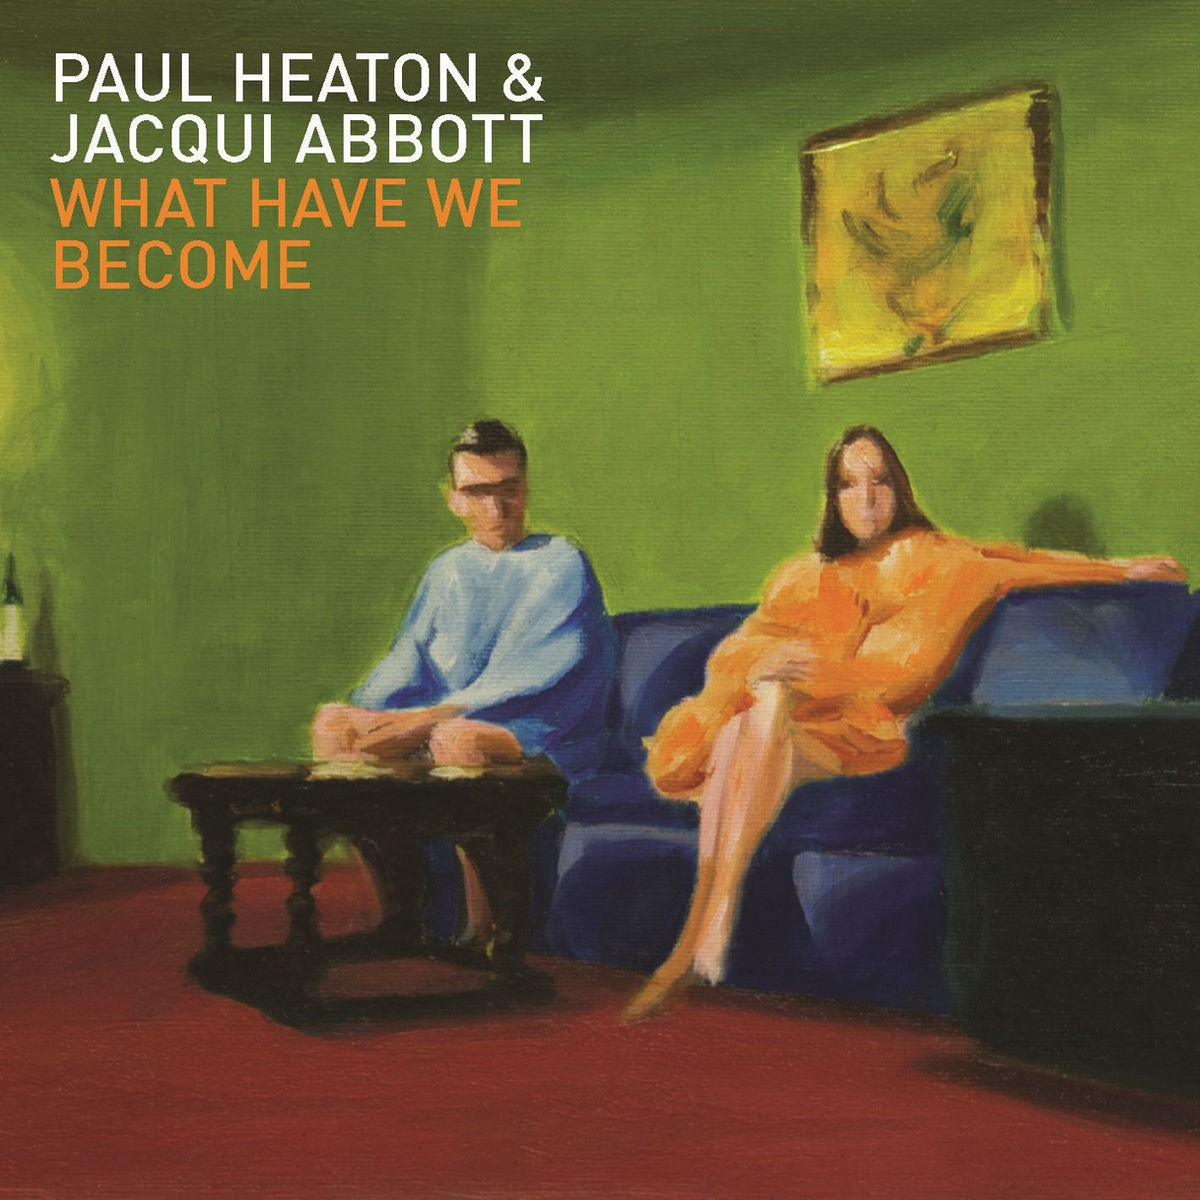 Paul Heaton & Jacqui Abbott - What Have We Become CD - 06025 3773771